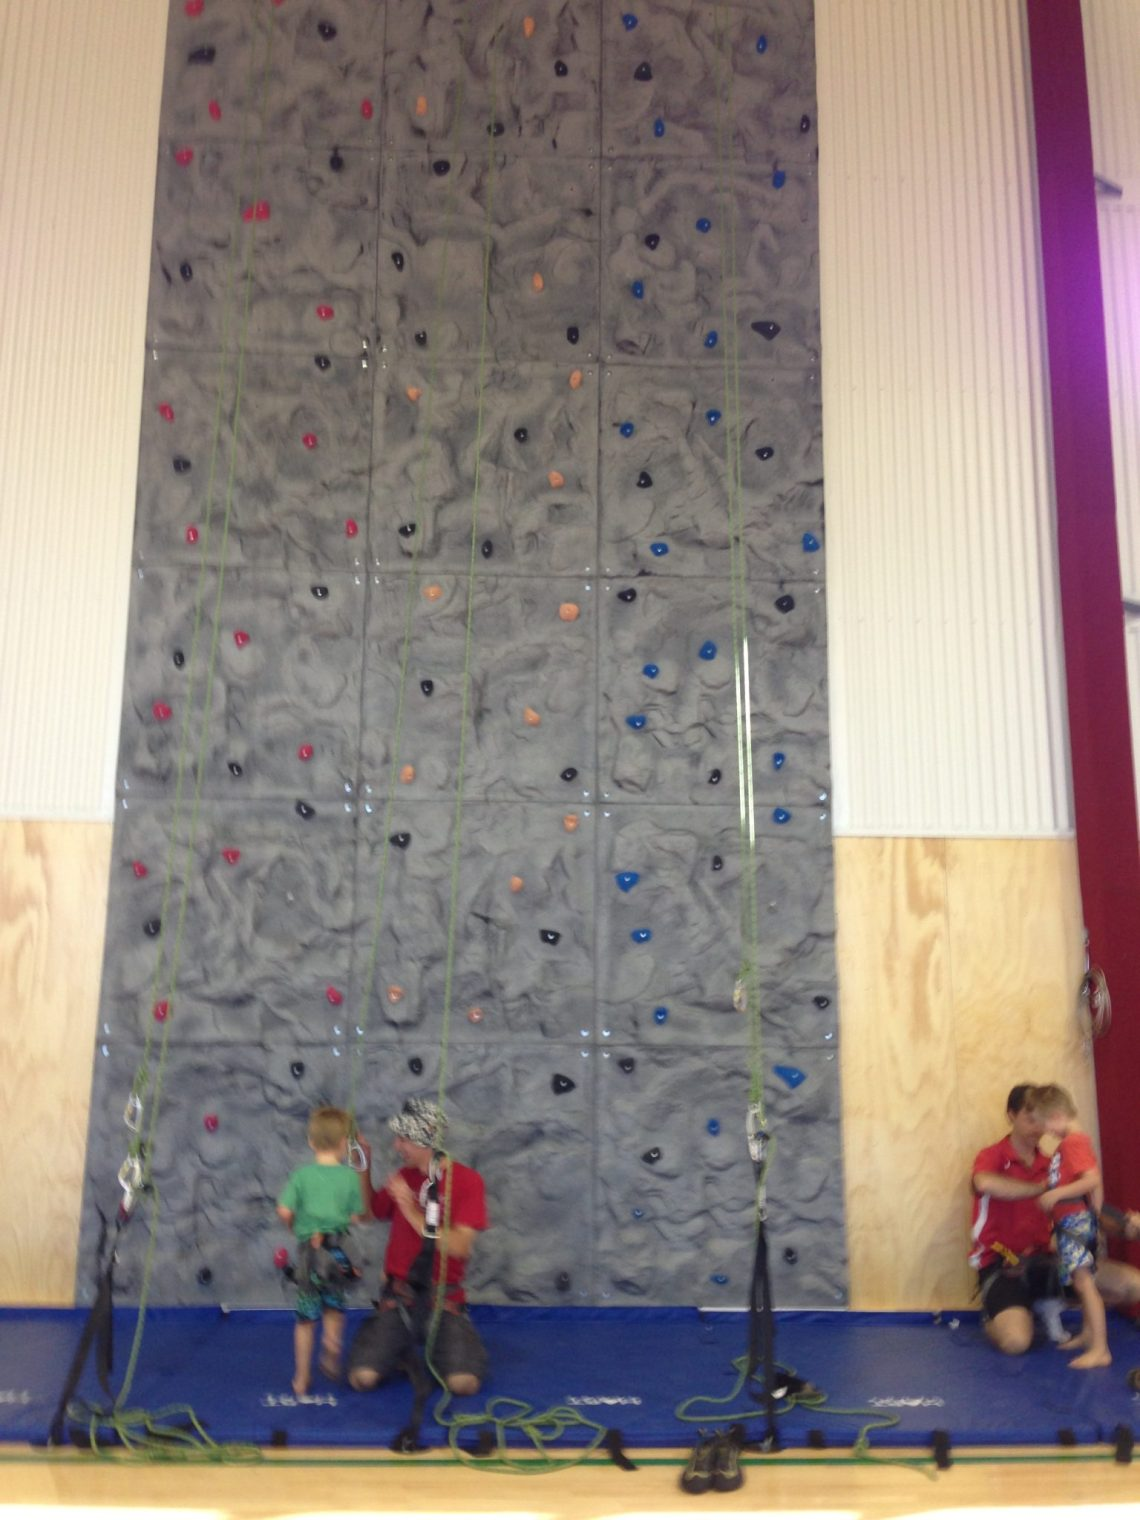 An Indoor Climbing Wall with 2 kids ready to climb